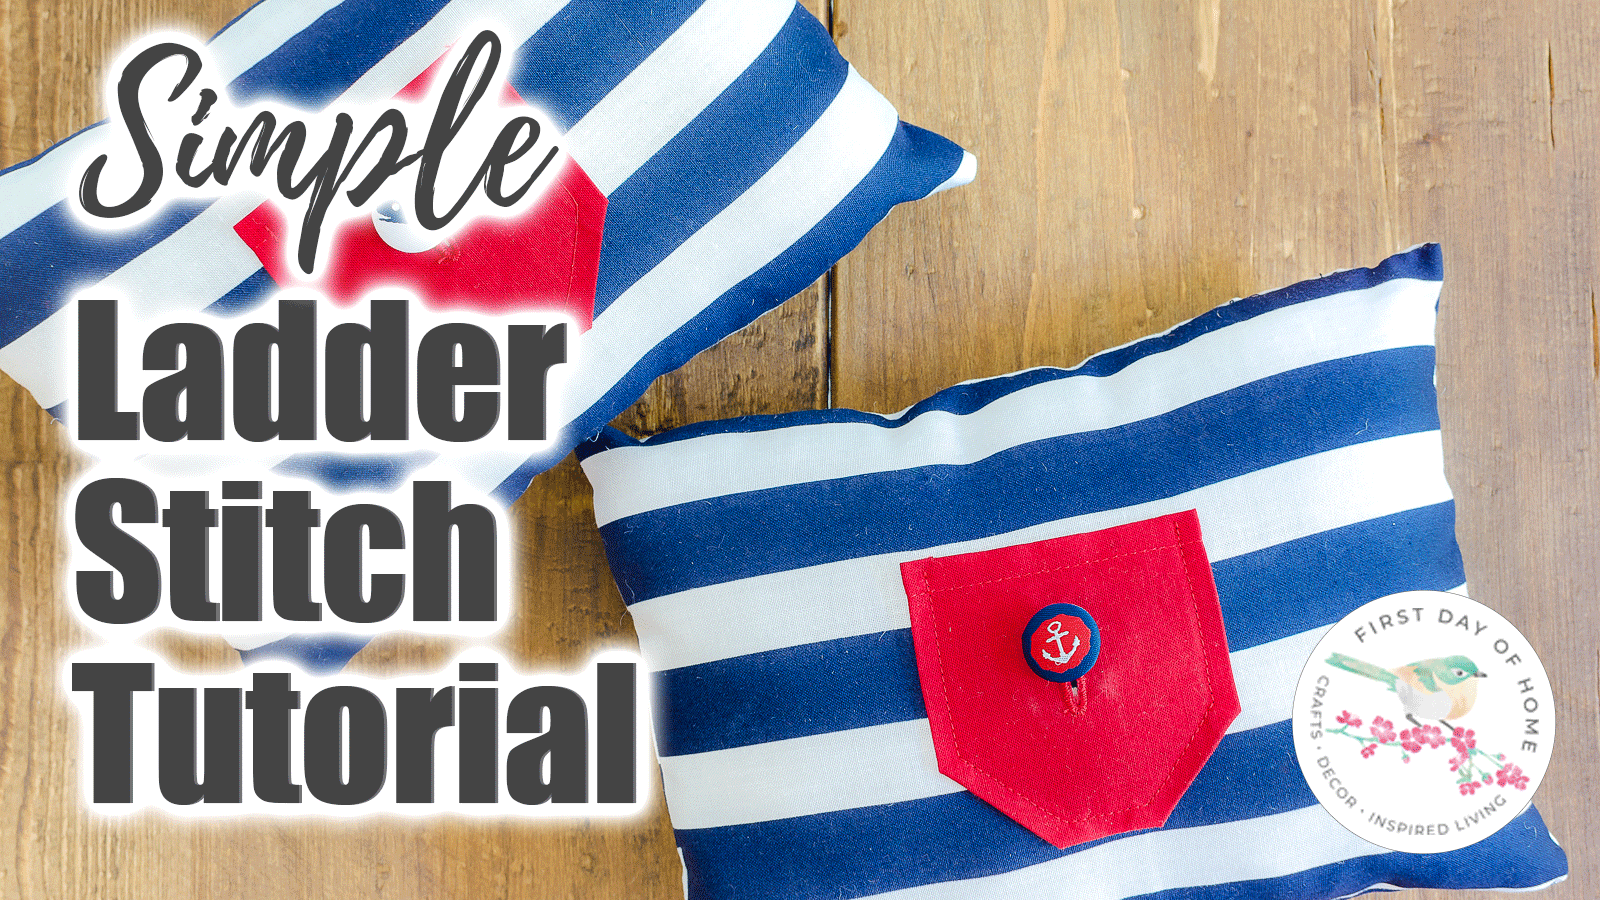 """Invisible stitch tutorial thumbnail  with text overlay """"Simple Ladder Stitch Tutorial"""""""